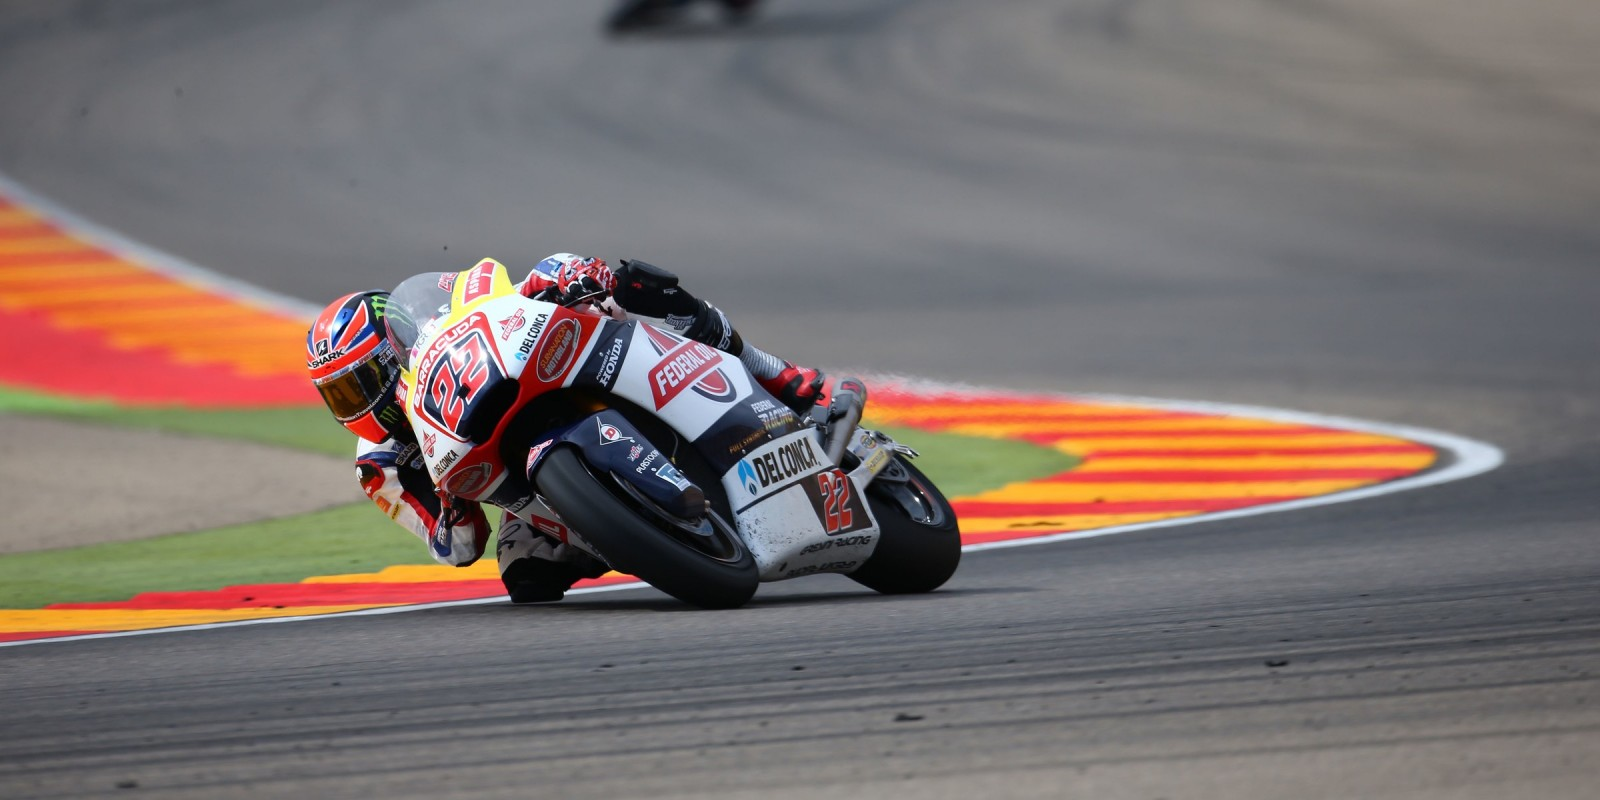 Monster athletes compete during the 2016 MotoGP season, race 2 in Aragon Spain